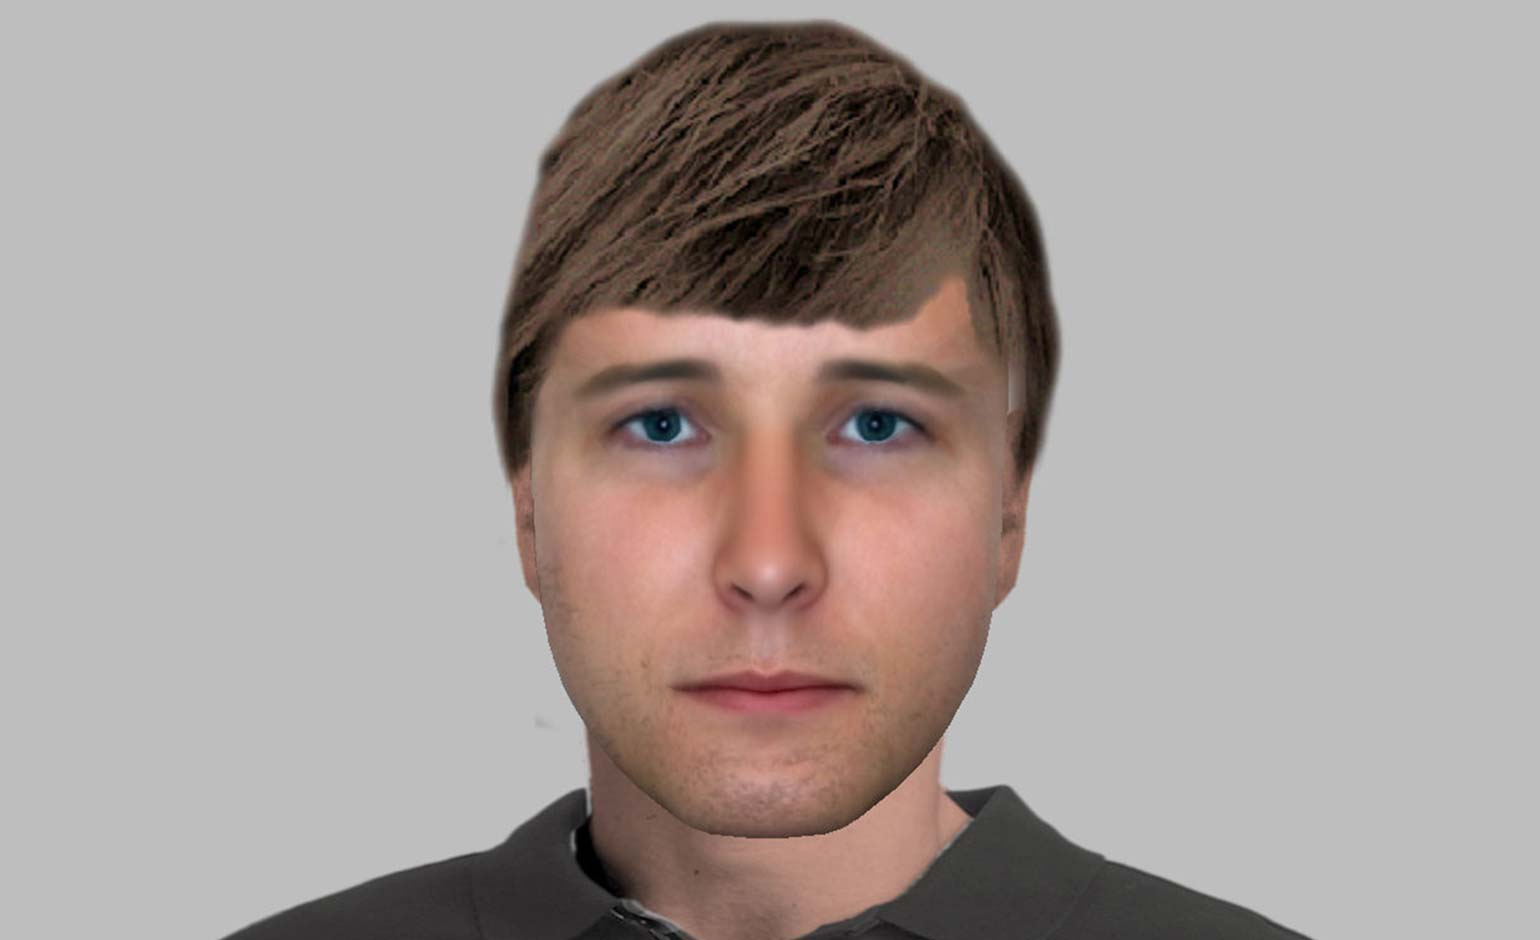 E-fit of man issued as part of ongoing Widcombe burglary investigation